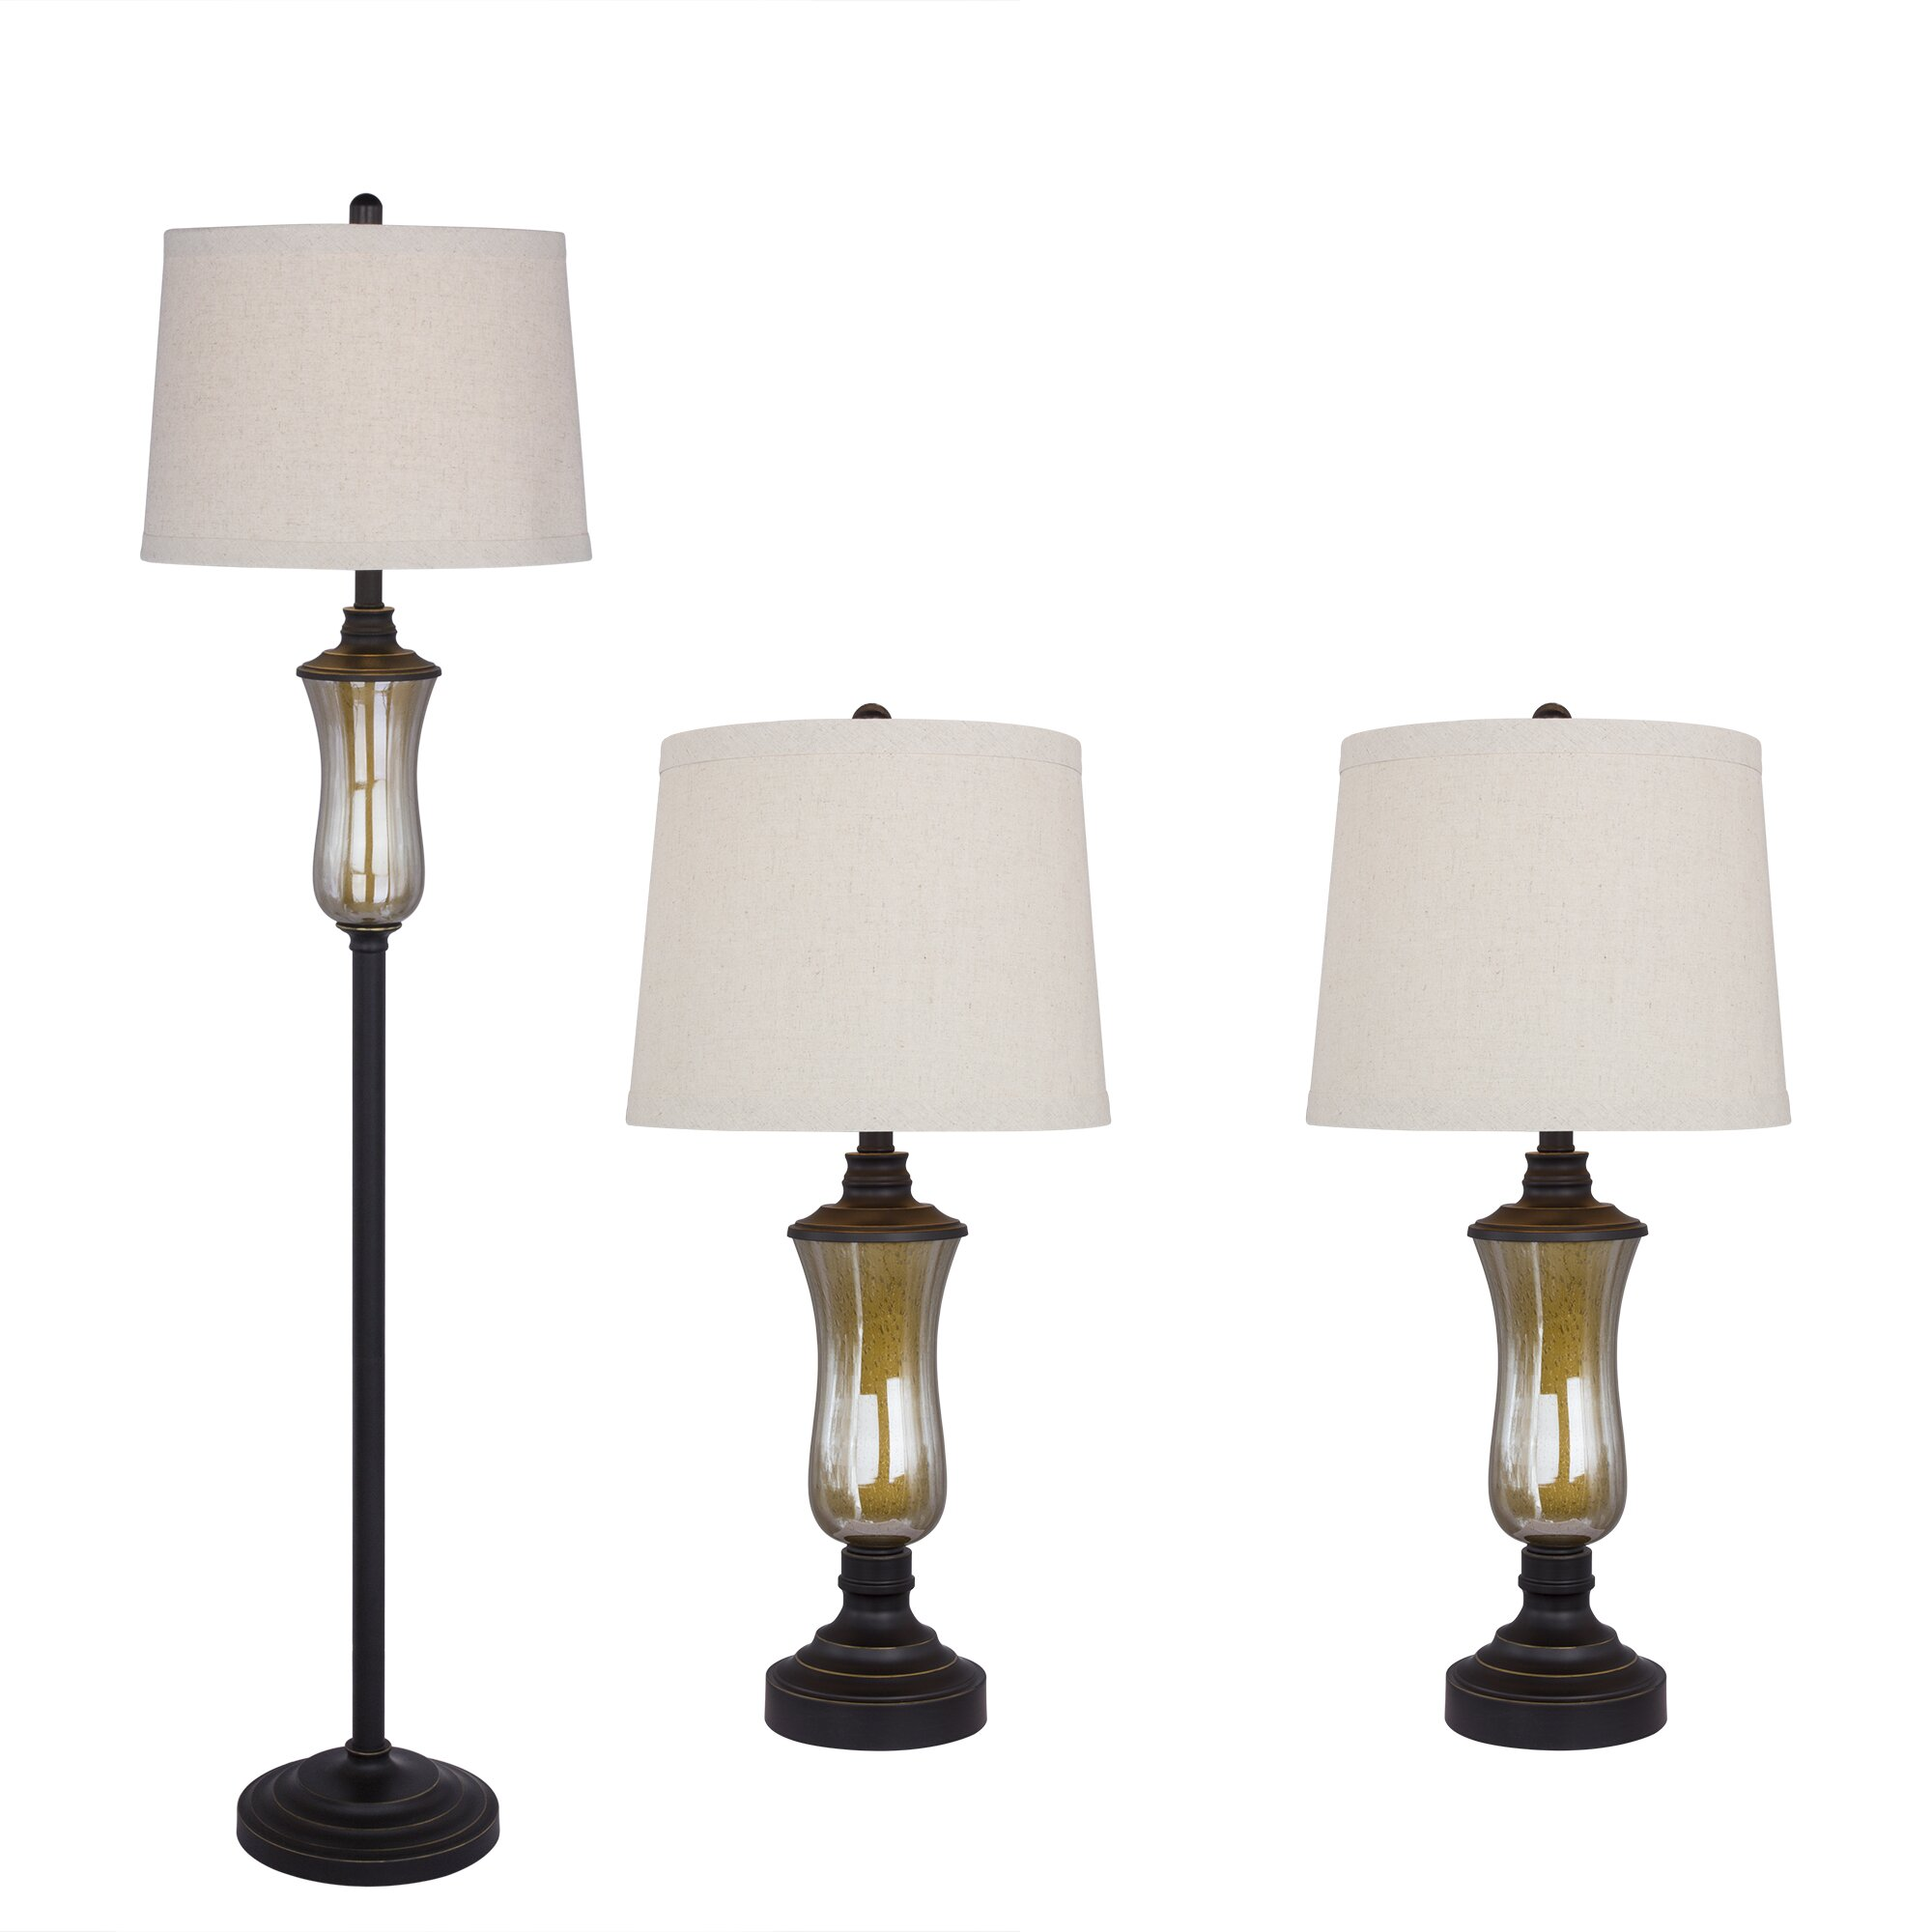 3 piece seeded glass and metal table floor lamp set wayfair for Floor lamp with table